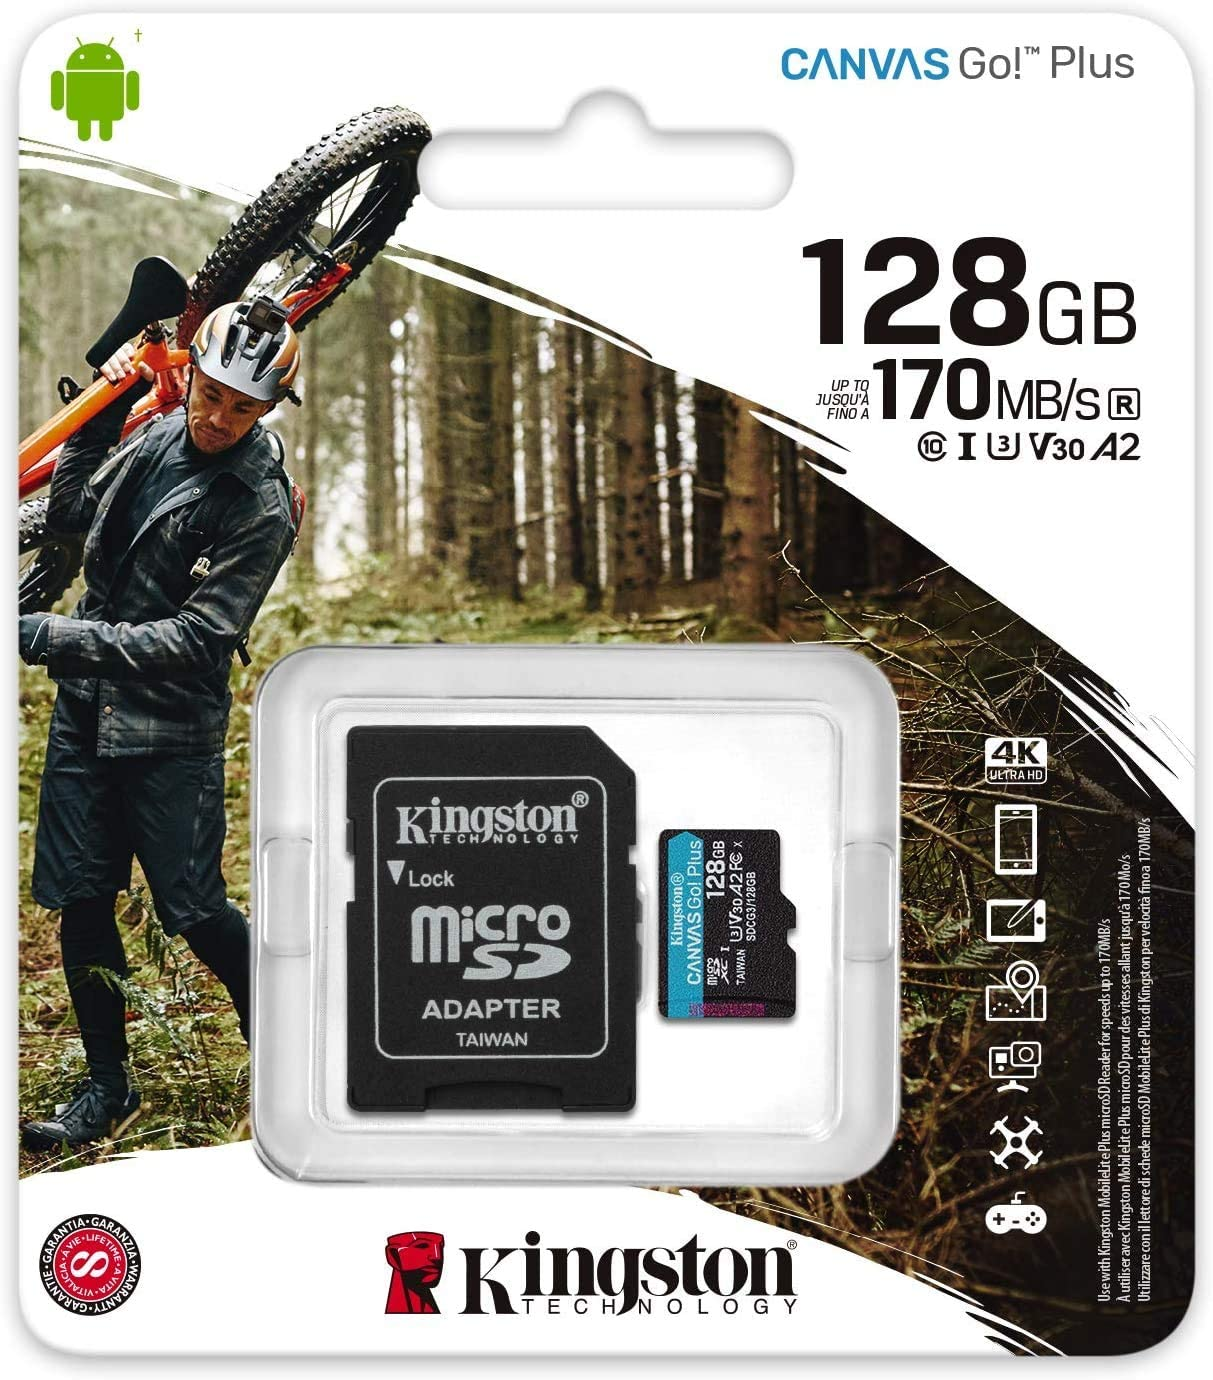 Kingston Micro Canvas Go Memory Card Kit Adapter For Computers Accessories